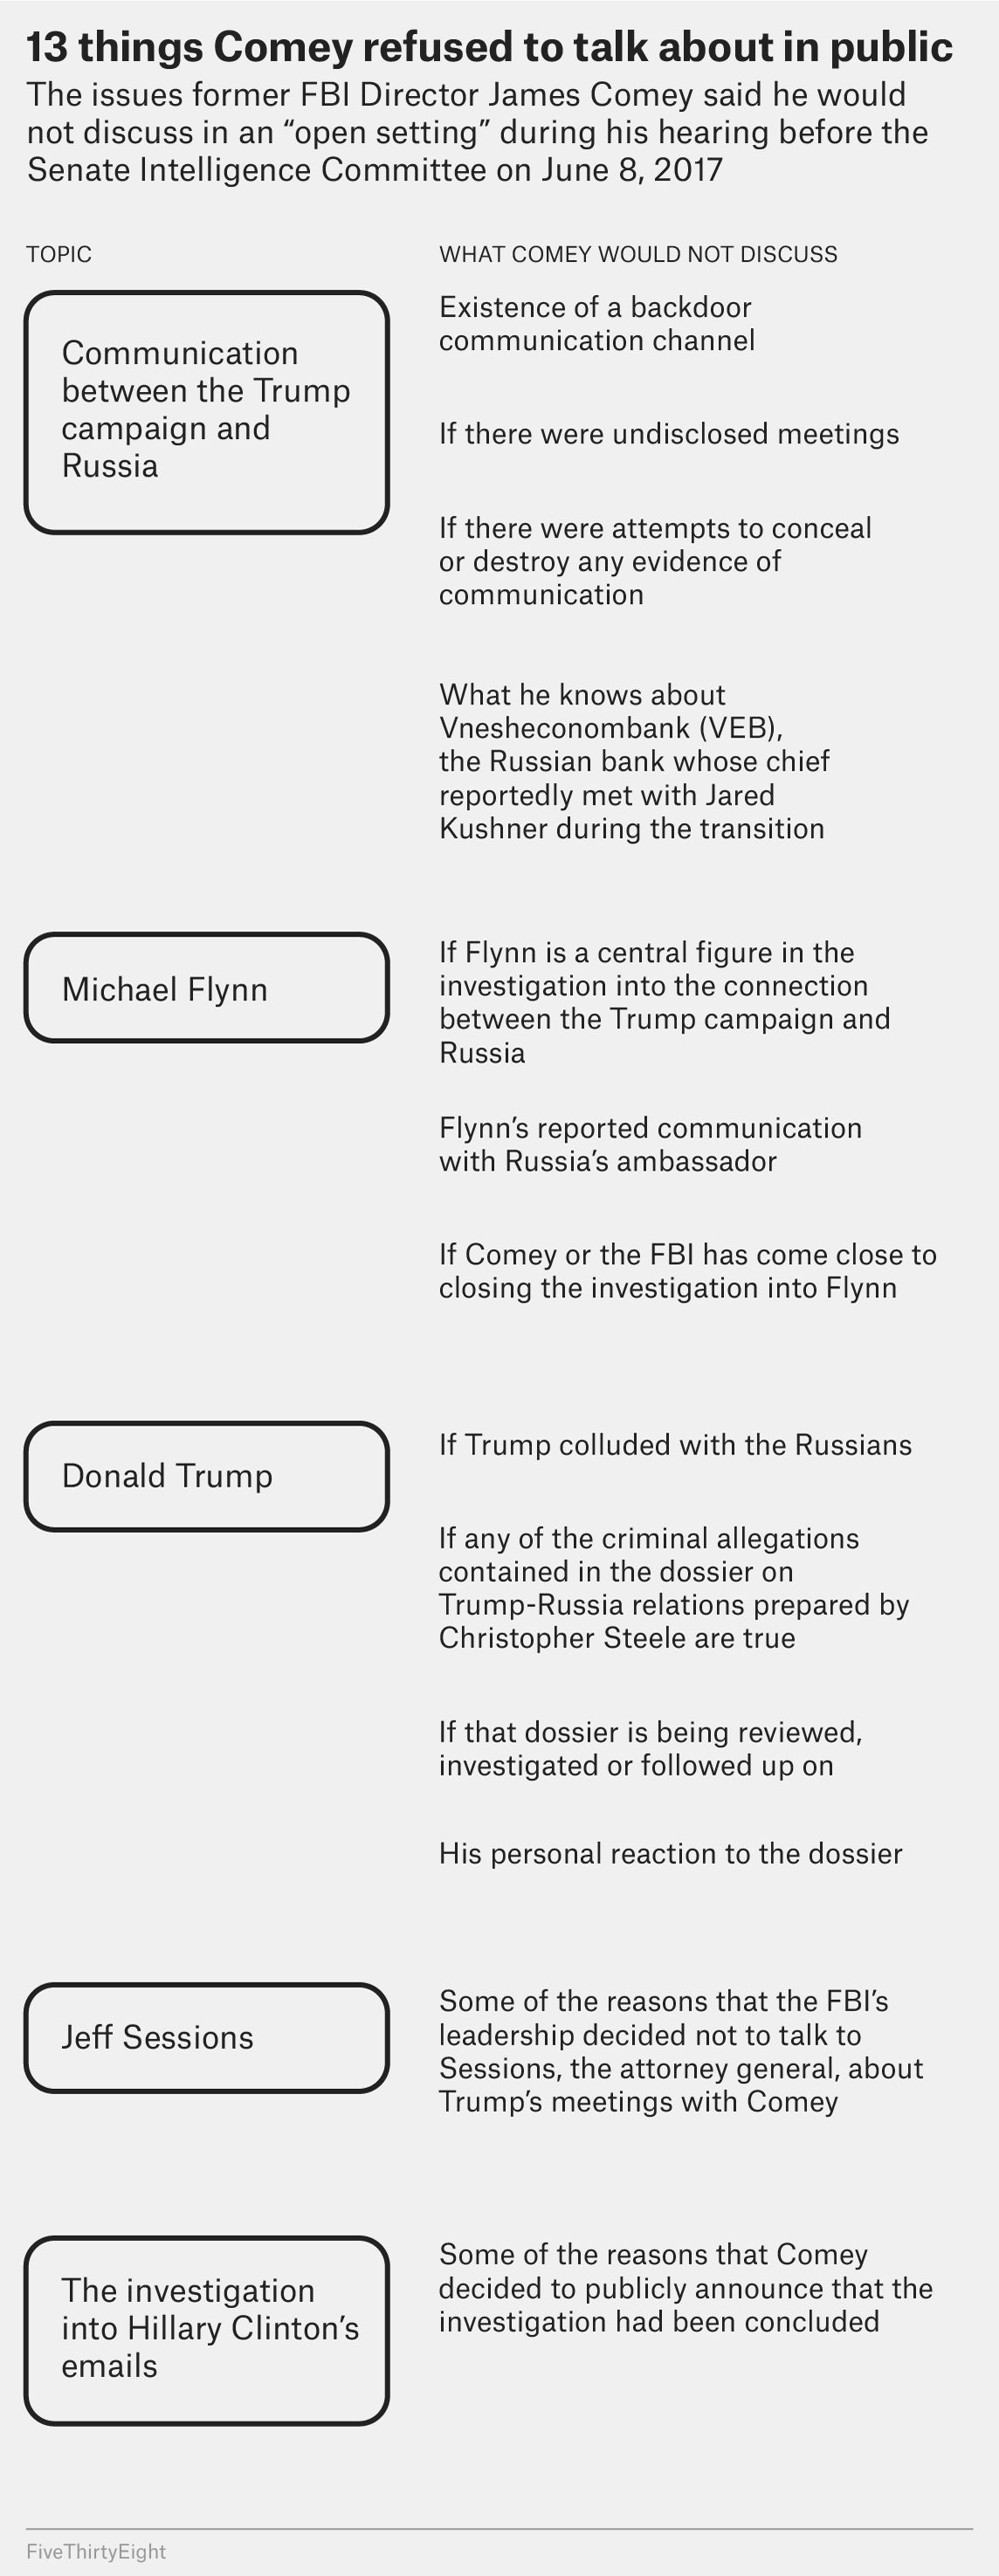 The Questions Comey Wouldn't Answer